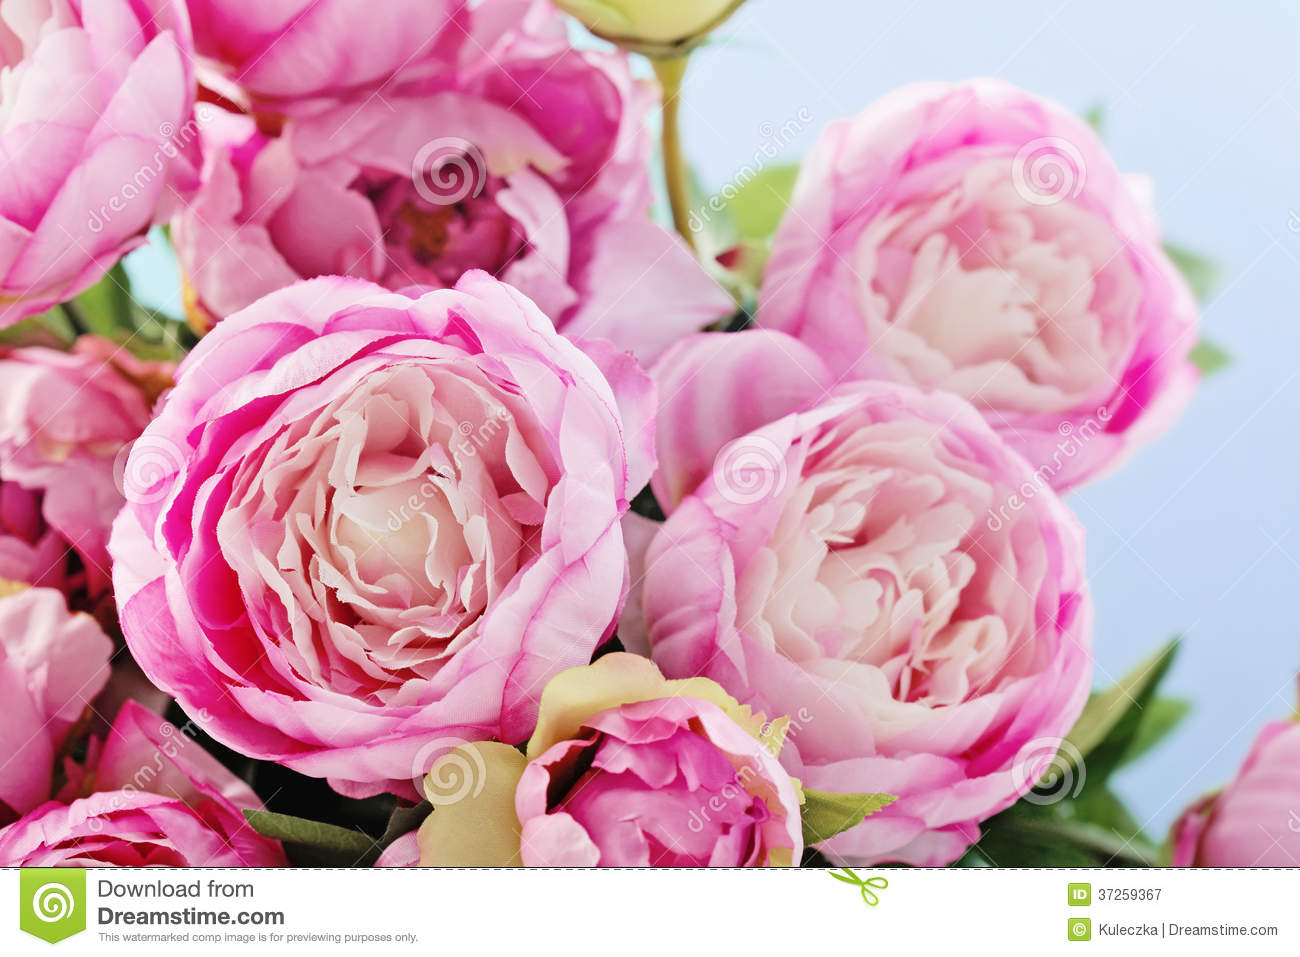 peony flowers stock image image of pink background 37259367